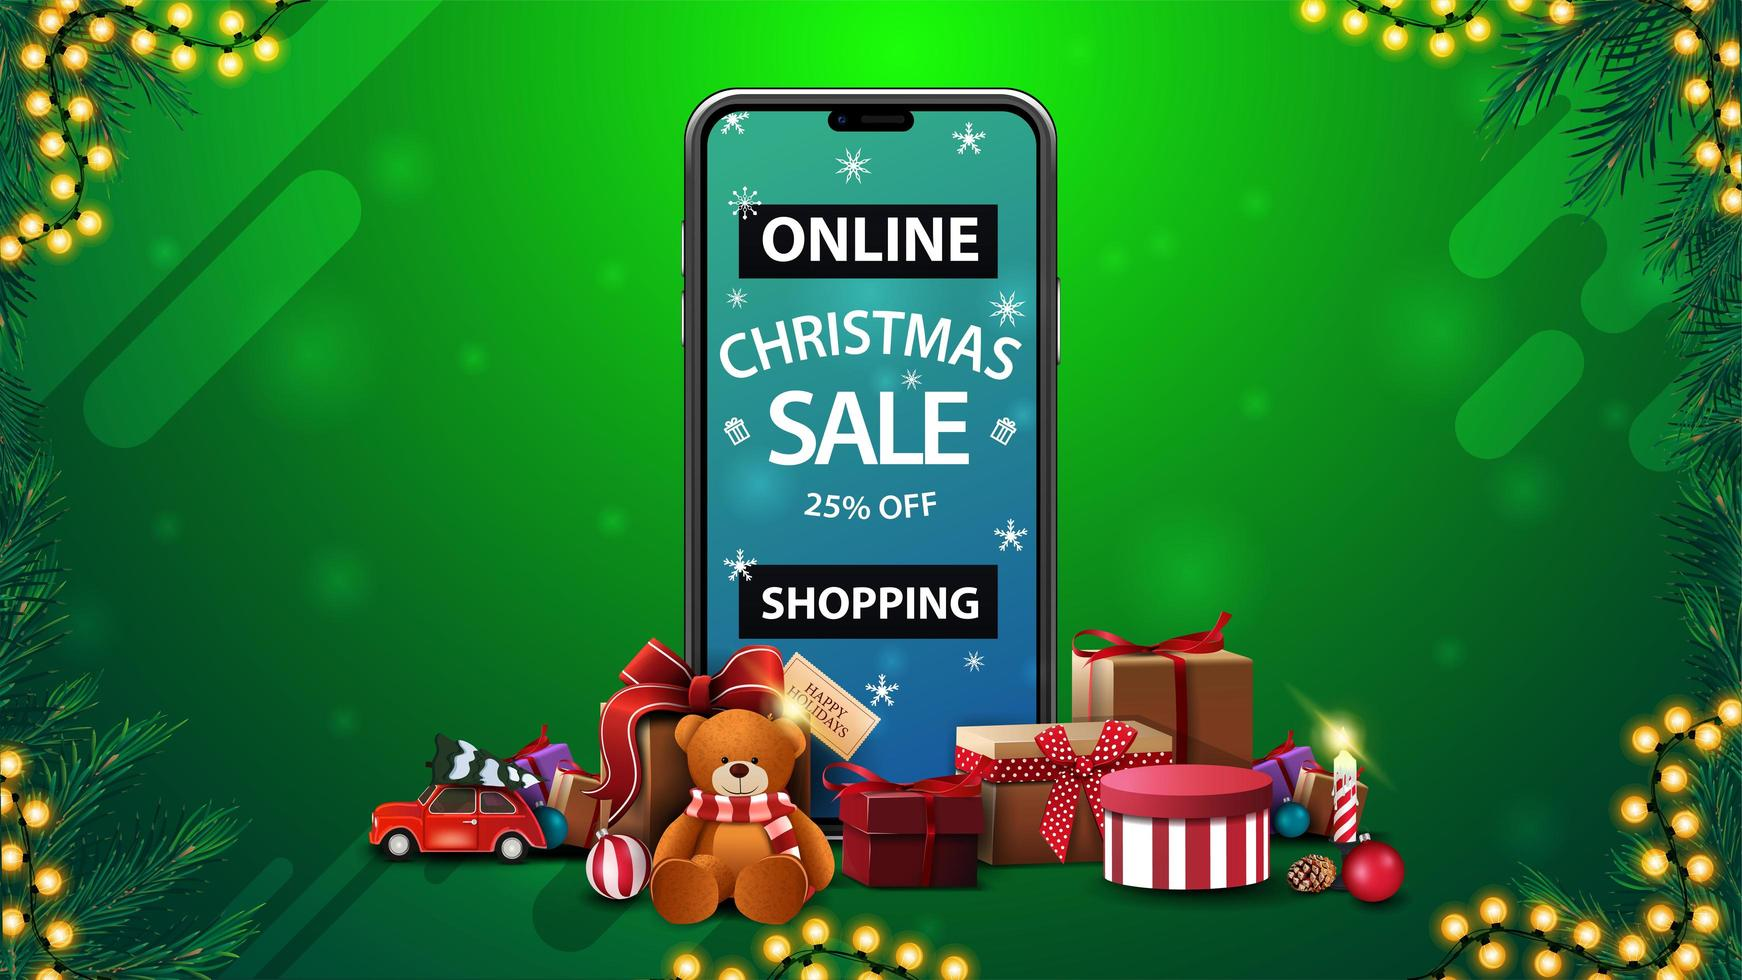 Online Shopping, Christmas sale, up to 25 off, discount banner with smartphone with offer on screen and presents around vector